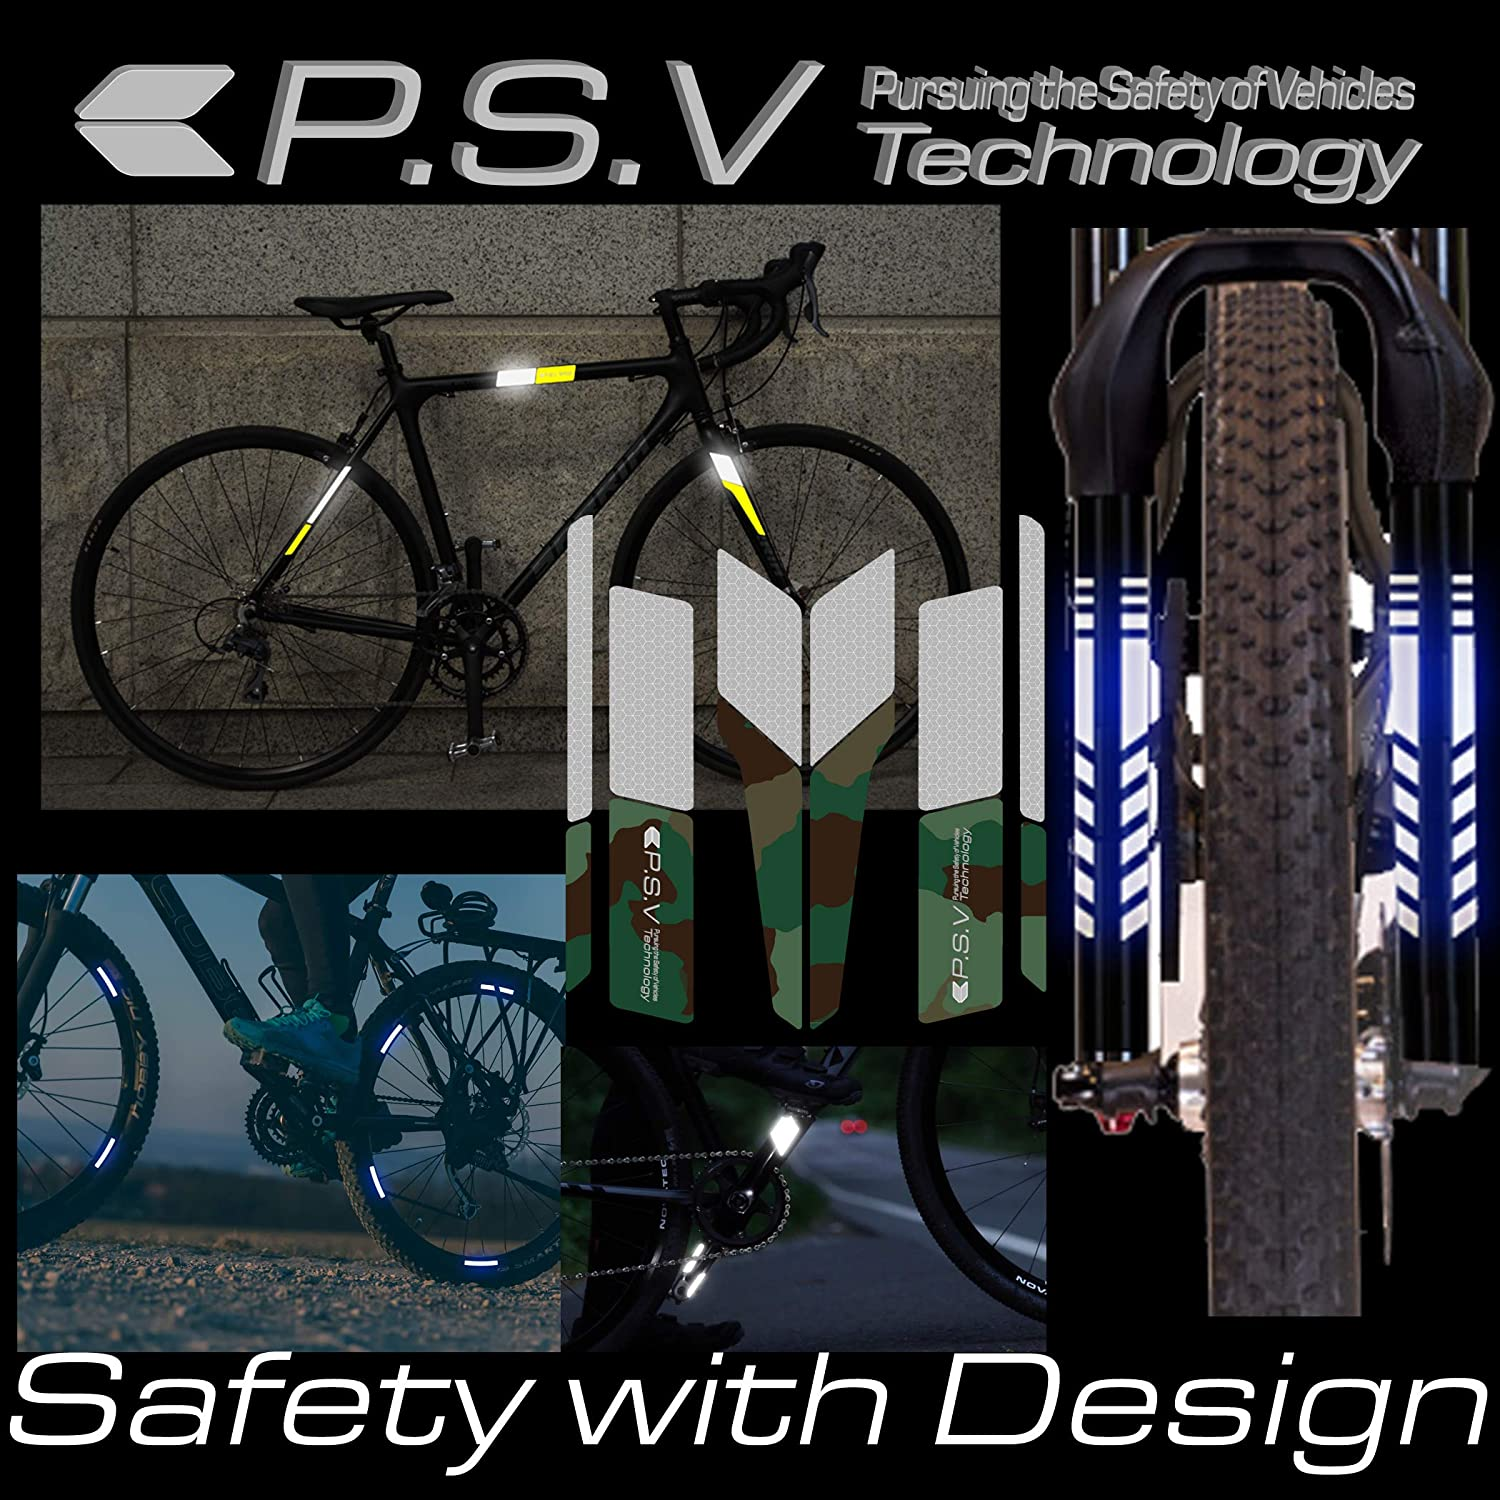 MTB P.S.V Technology ATPC Japan Pedal Arm Reflector Reflector to Paste on Bicycle Crank Strong Reflection of Light Nightly Safety is Improved by 360 Degree Visibility Road Bike